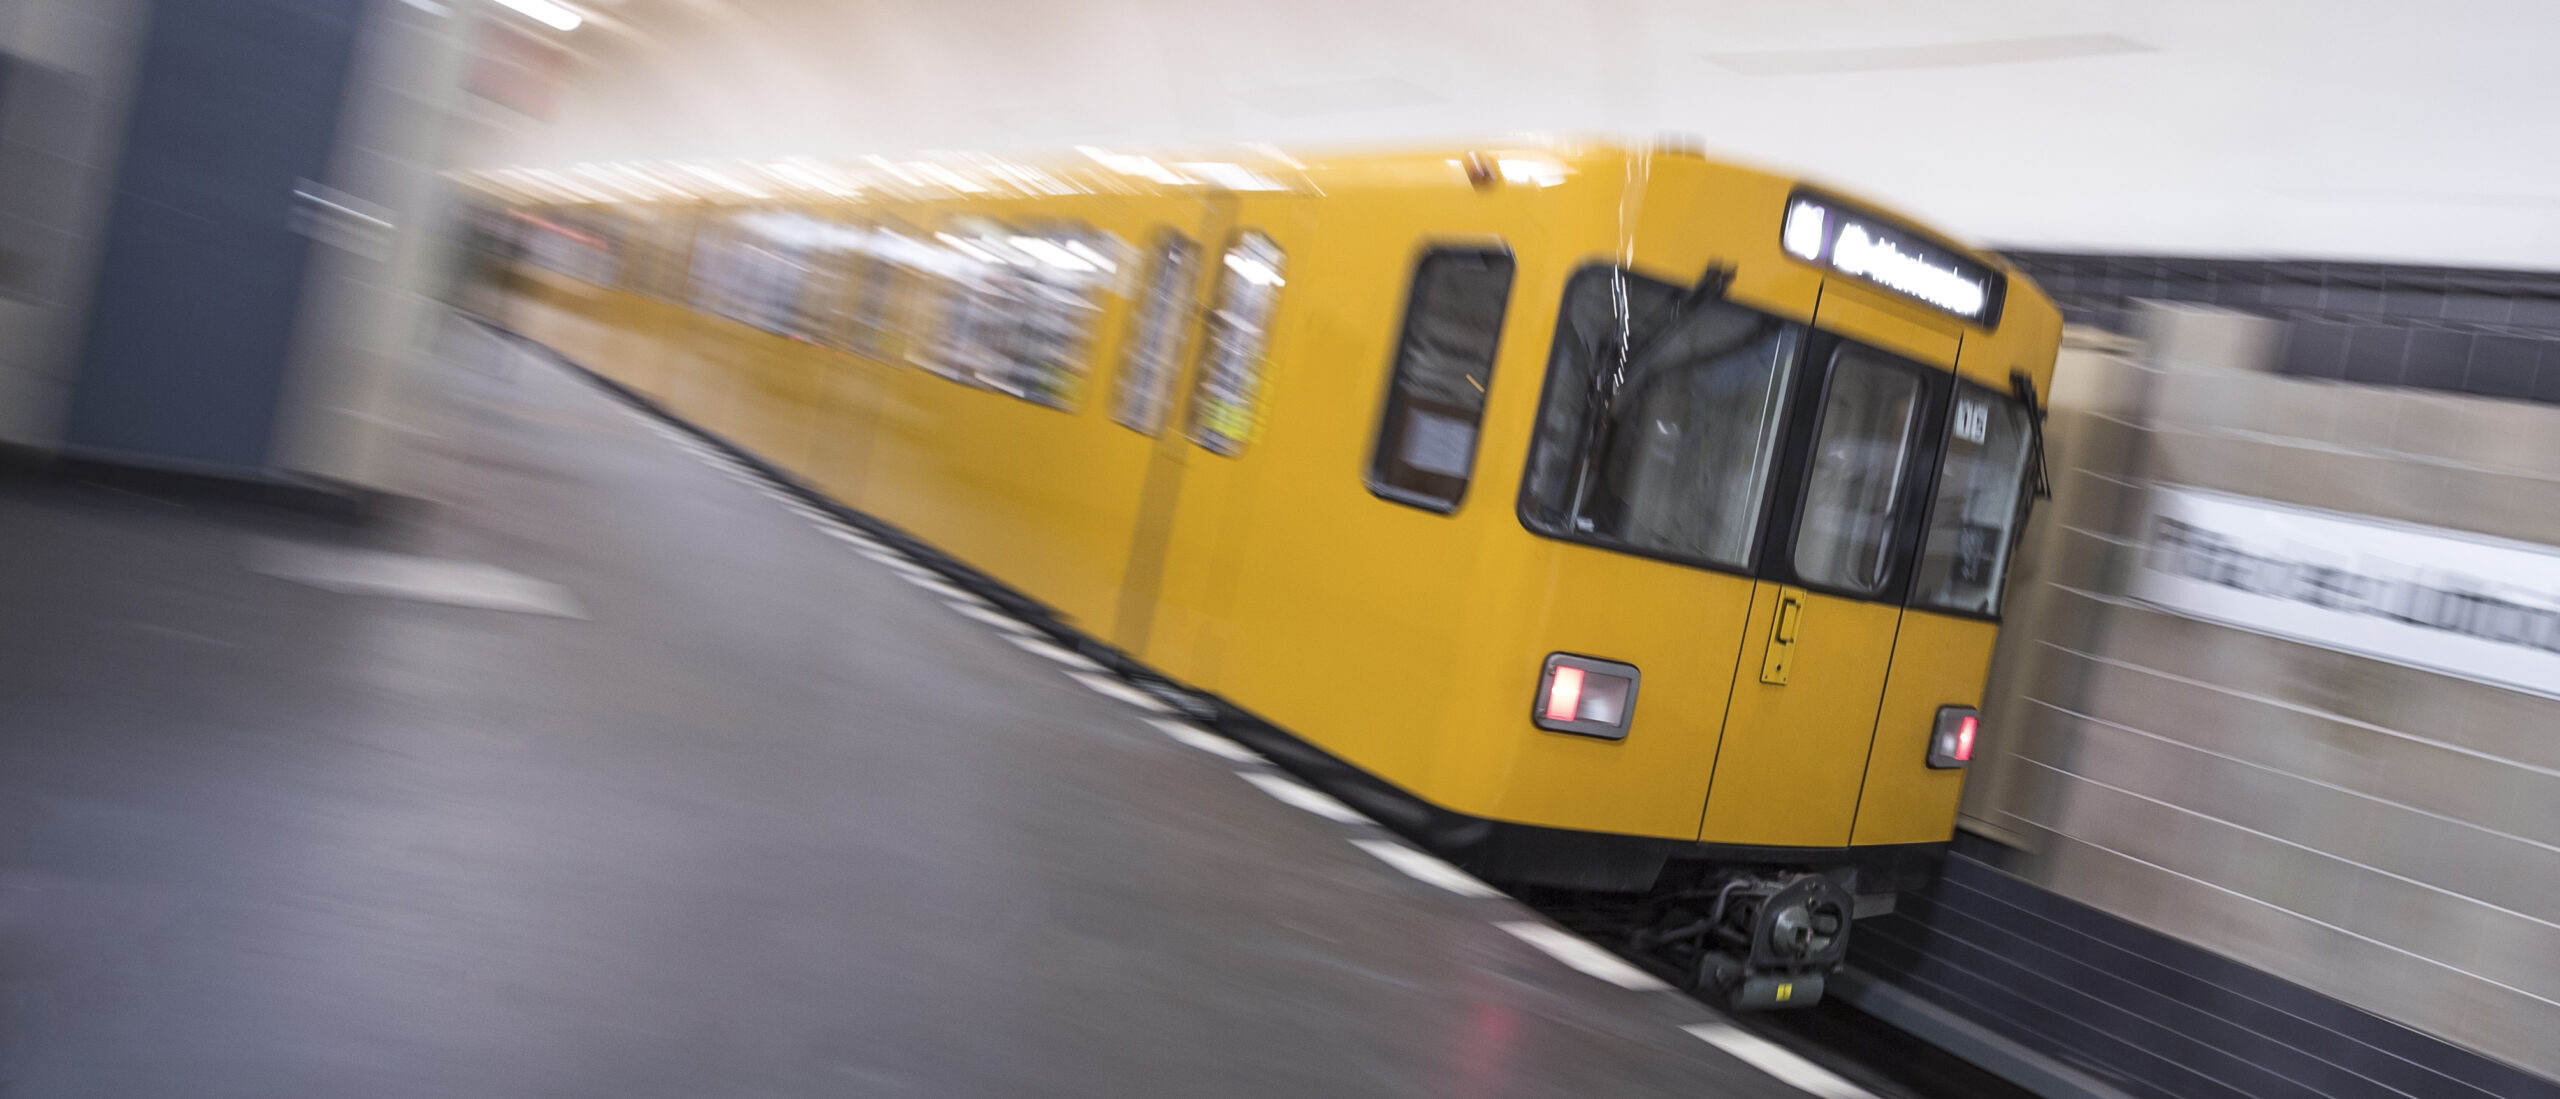 RAILEYE® products will work perfectly on a subway train